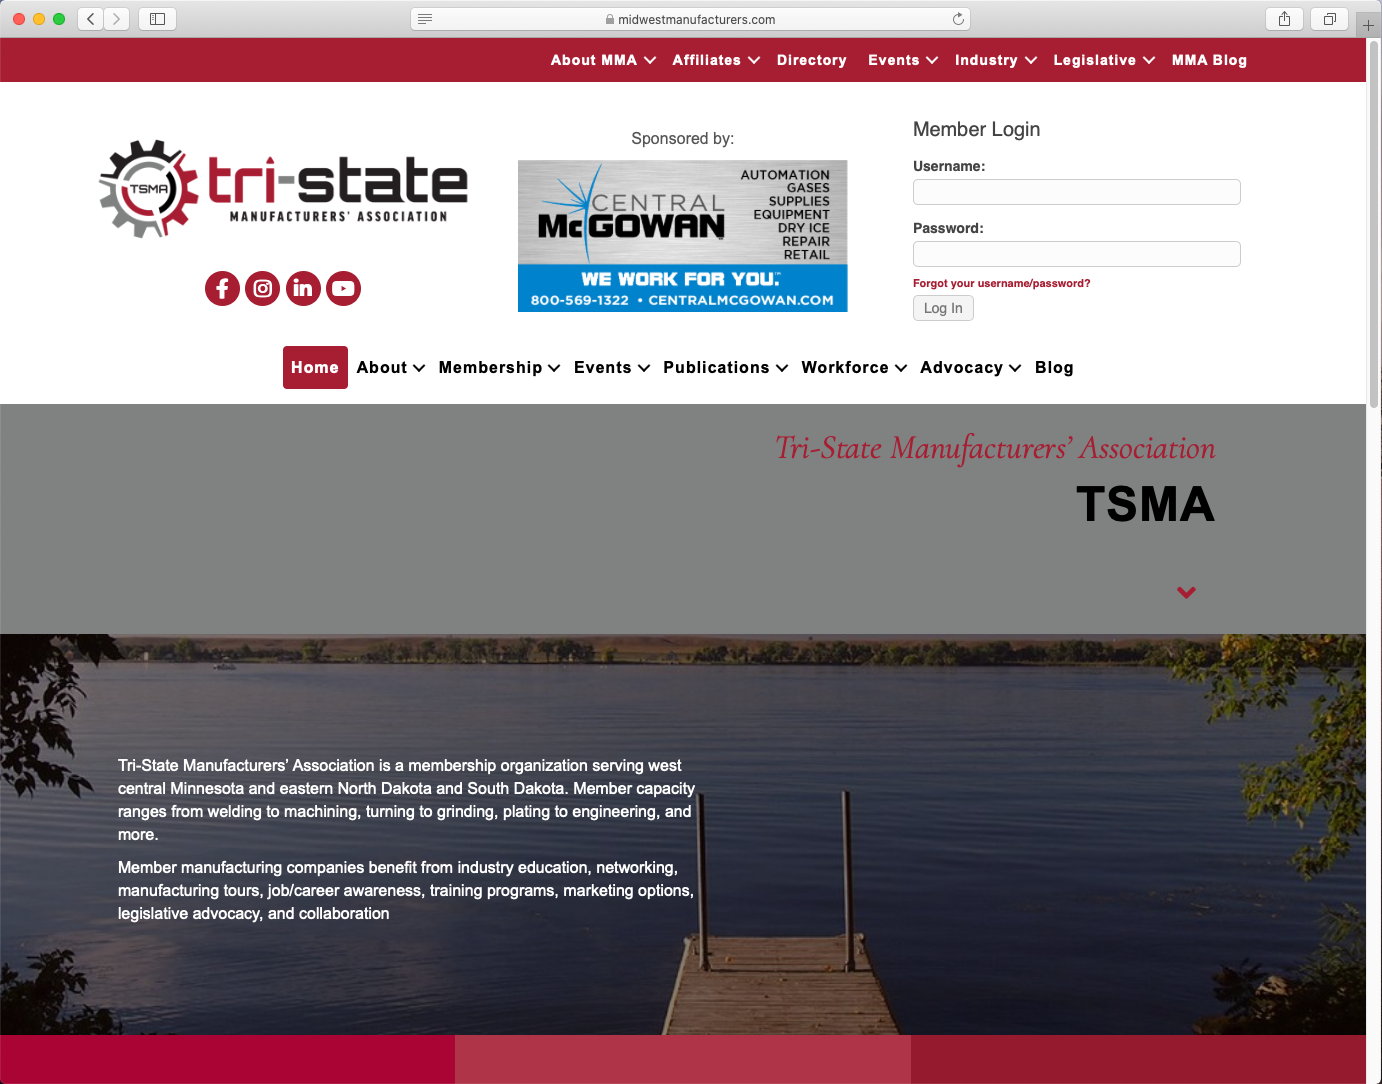 New TSMA website launched on January 1